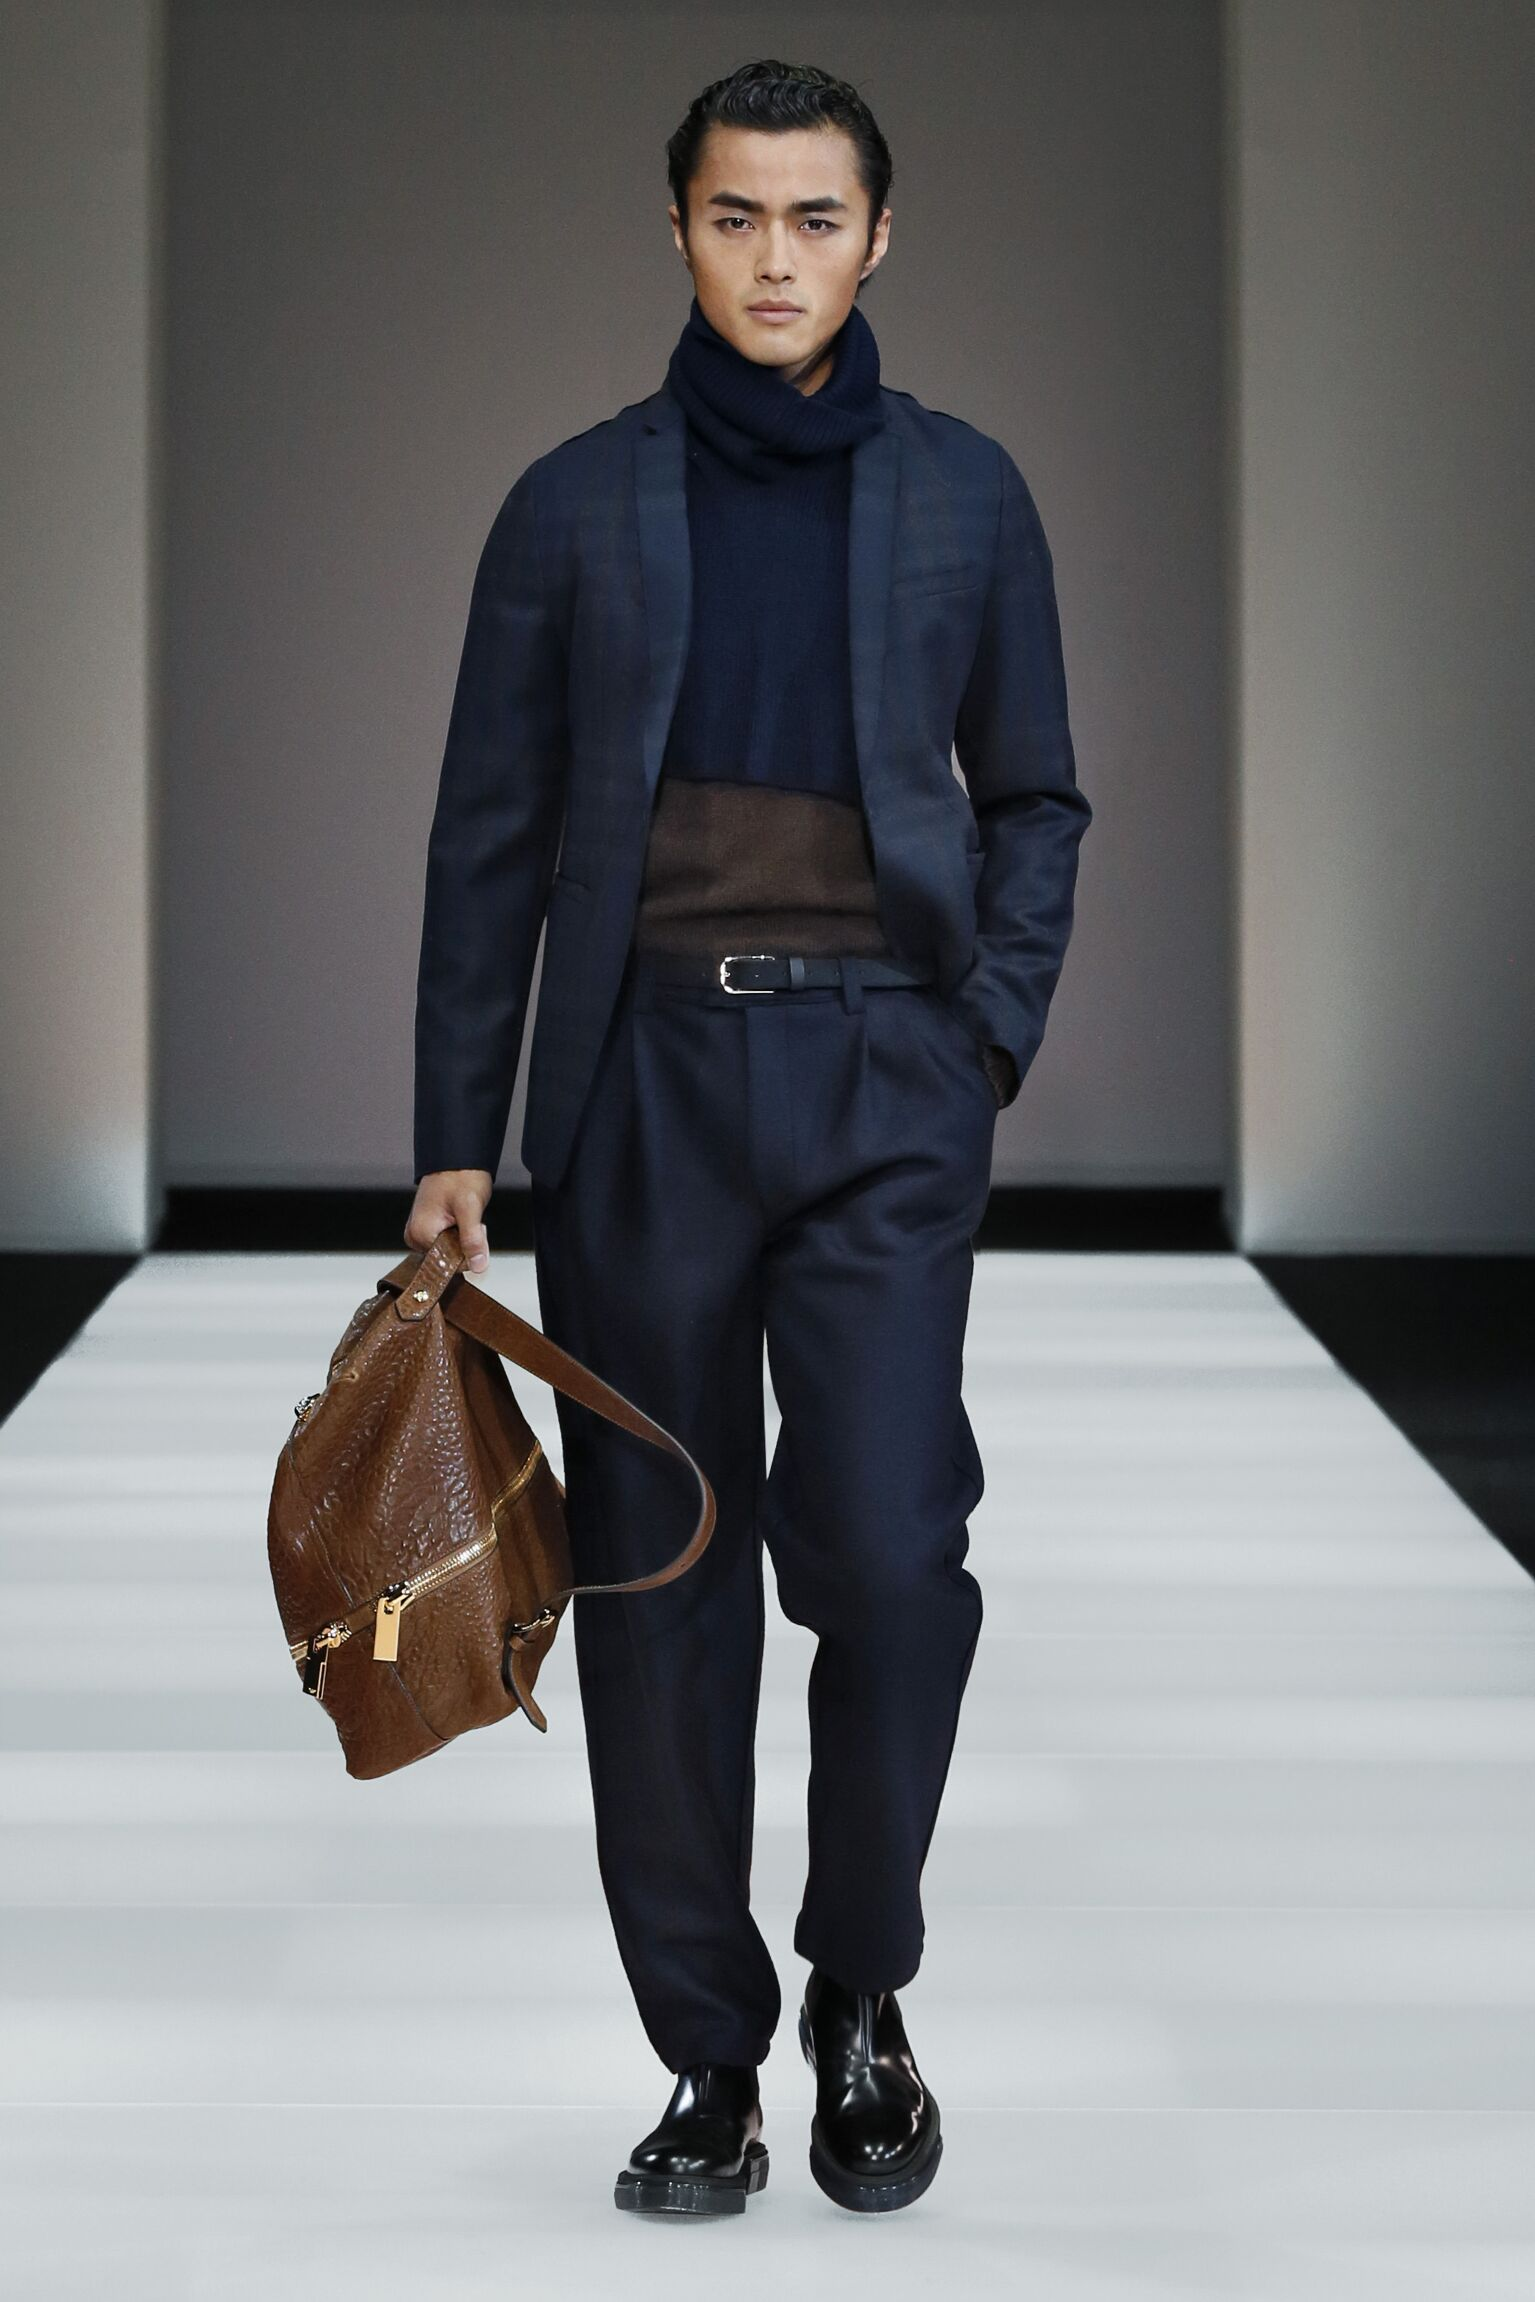 Emporio Armani Collection Men's FW 2015 16 Fashion Show